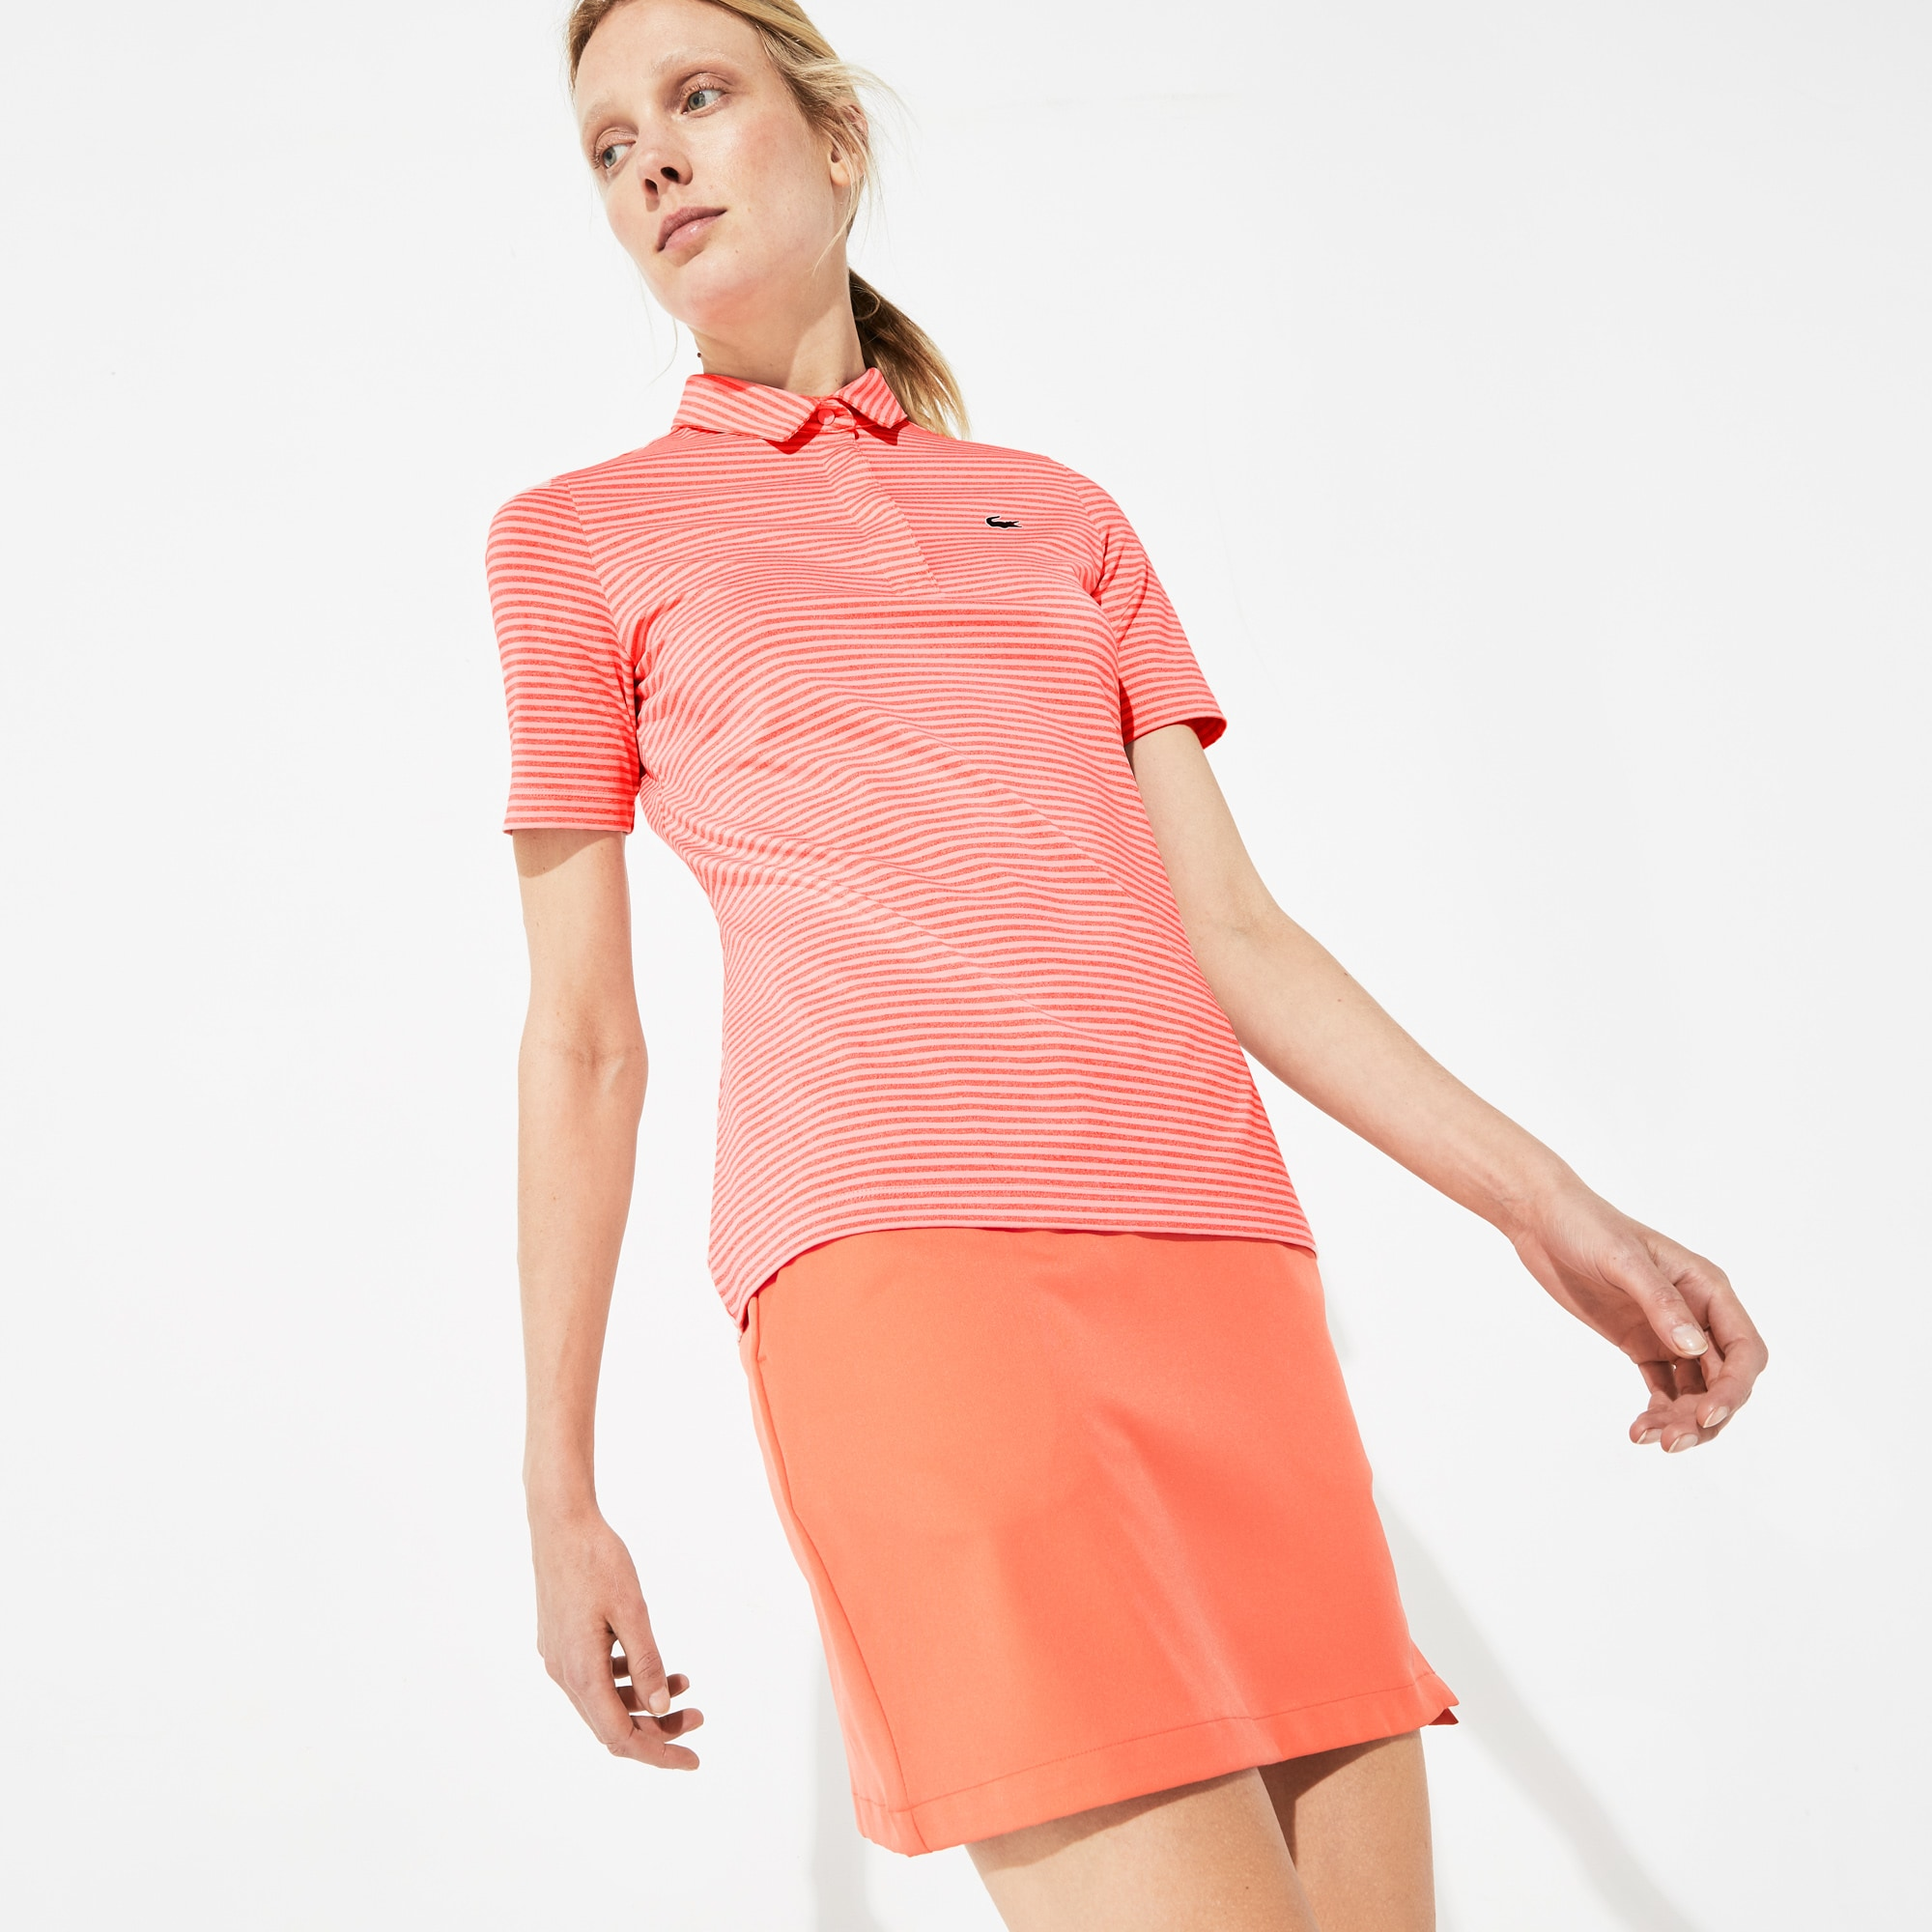 733fbb8f2017 Women's Collection | LACOSTE